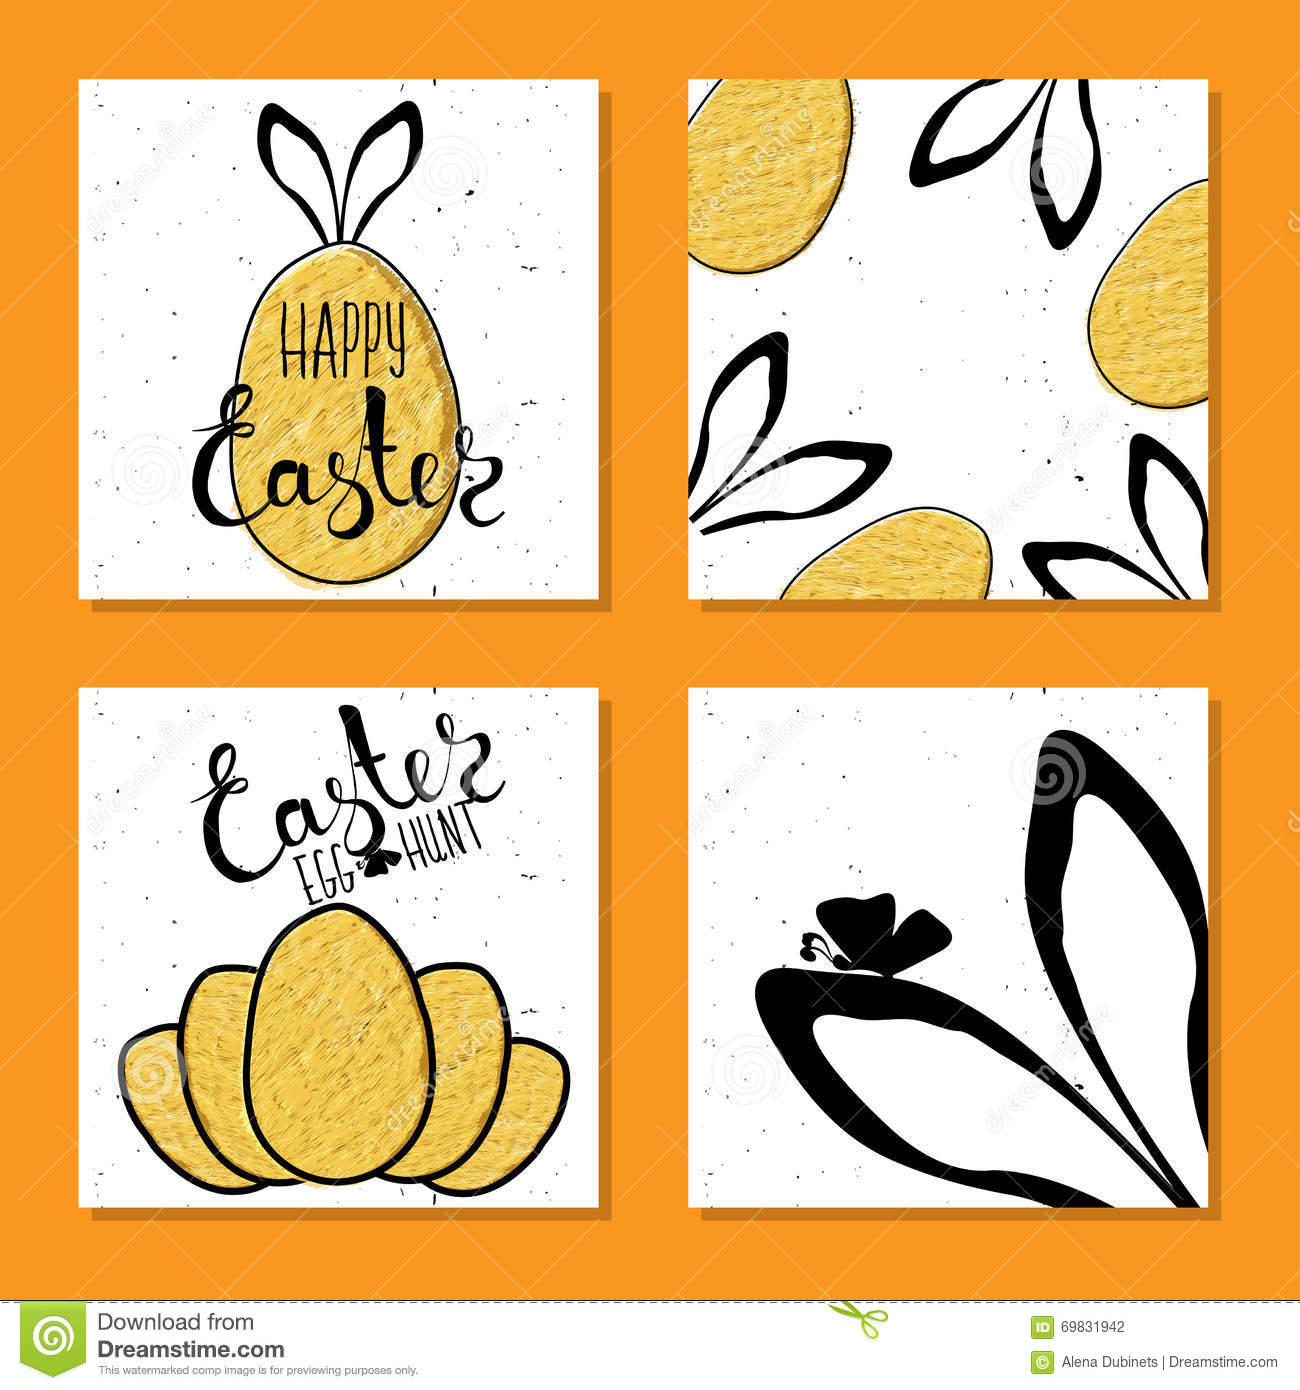 Colorful Set Printable Card For Easter With Eggs And Rabbit Ears Vector